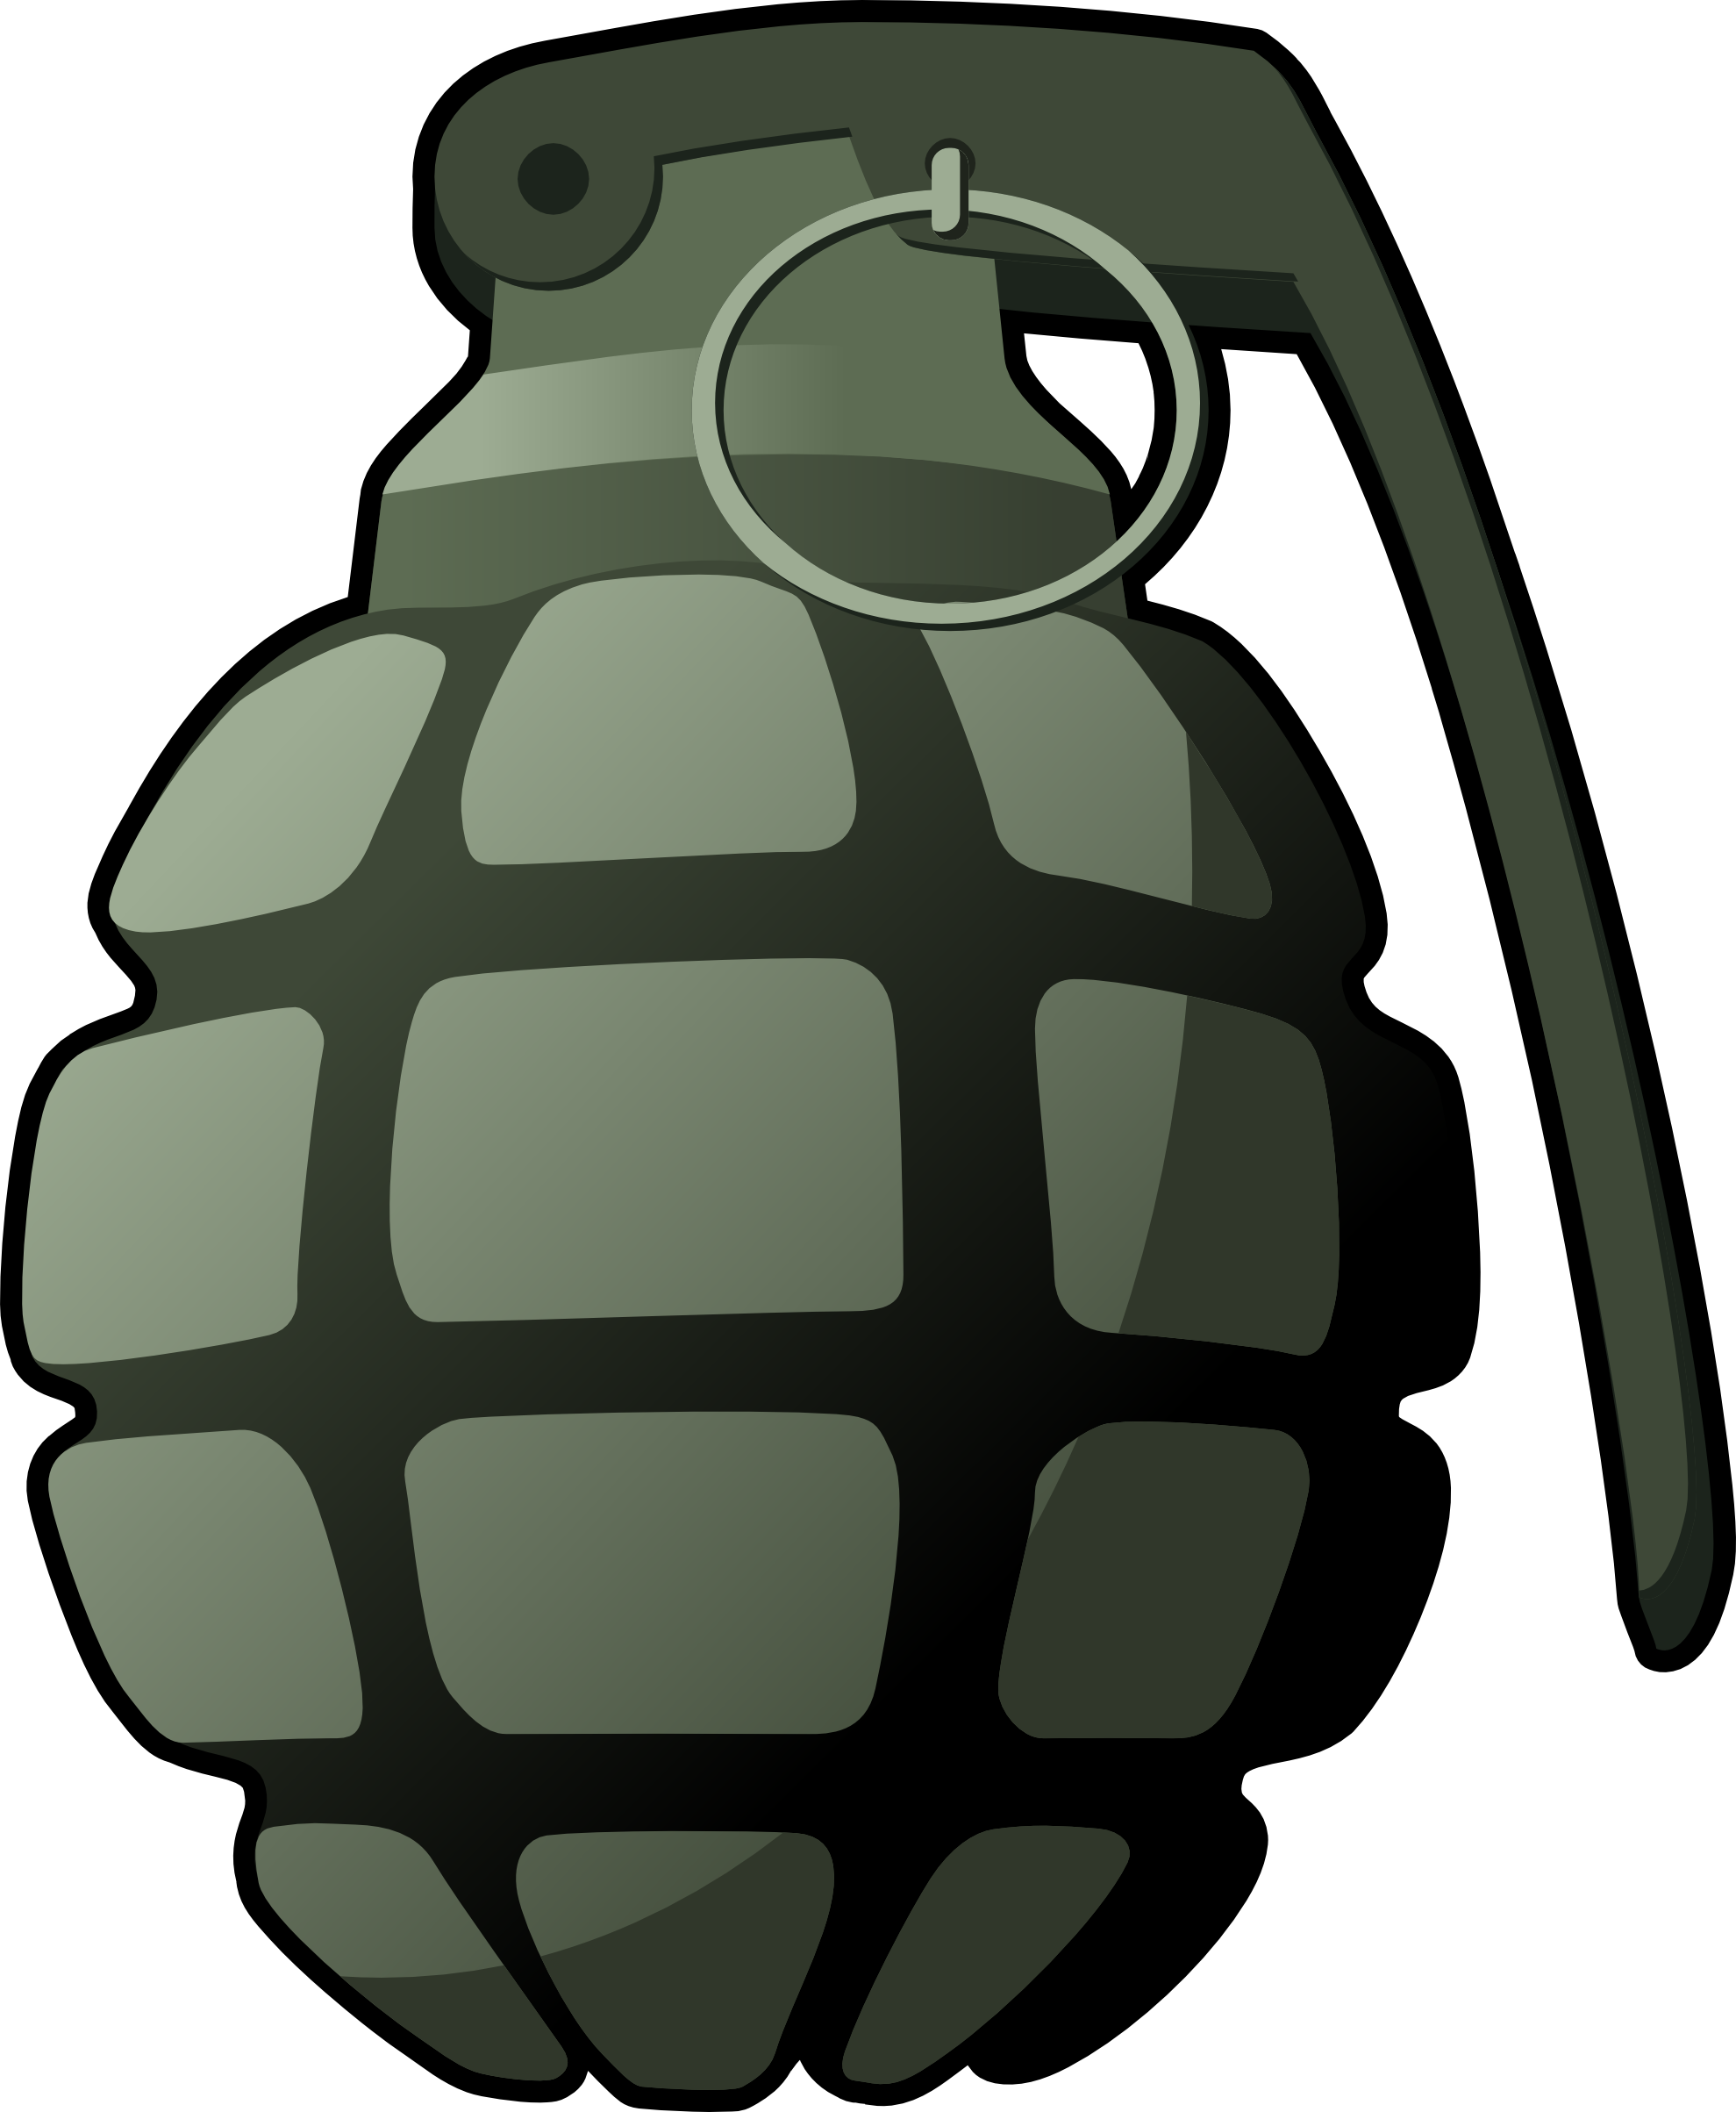 Isolated Photos of grenade.